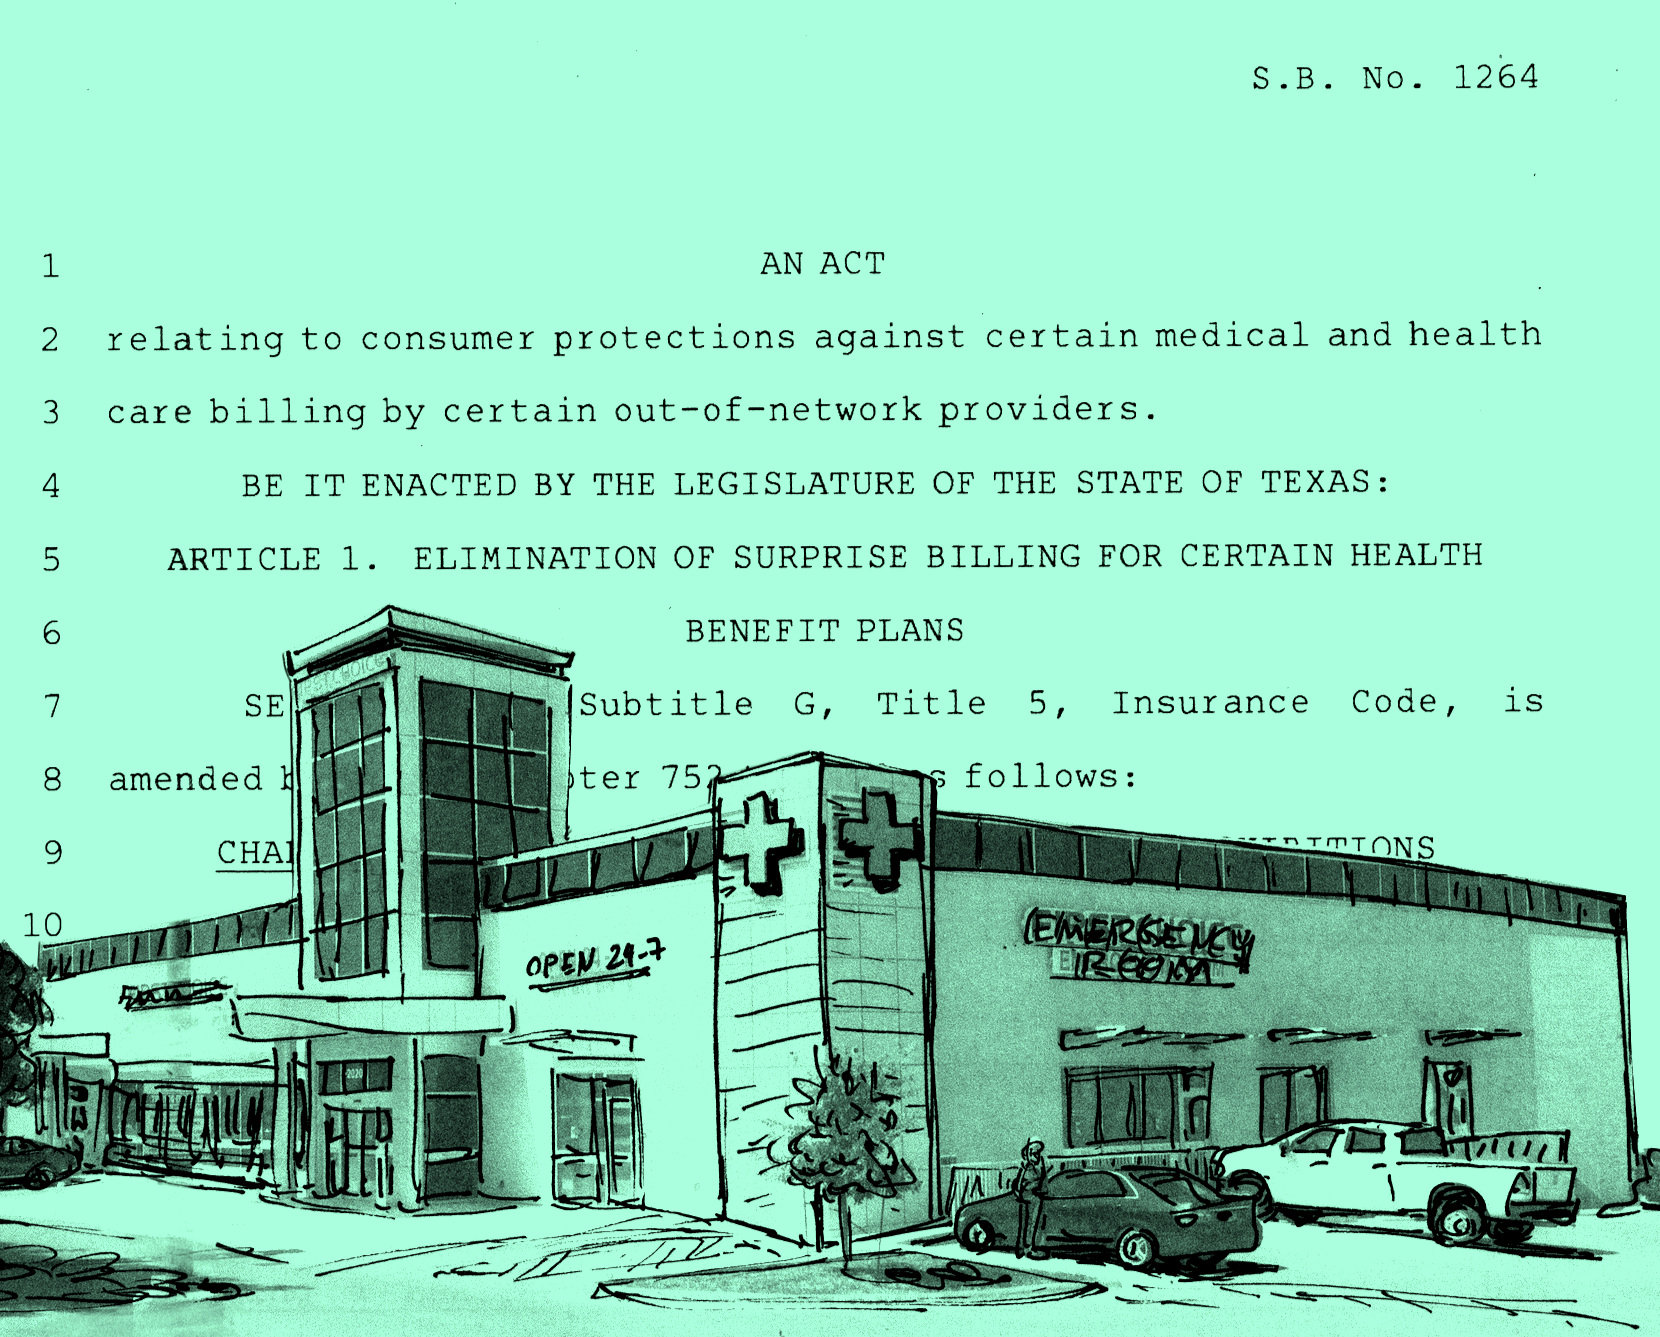 """Senate Bill 1264  is a new Texas law that seeks to eliminate surprise billing or """"balance billing,"""" which occurs when out-of-network health care providers and insurance companies can't agree on the price of a medical treatment, resulting in hefty surprise medical bills that get sent to the patient. SB 1264 only applies to certain state-regulated health plans."""